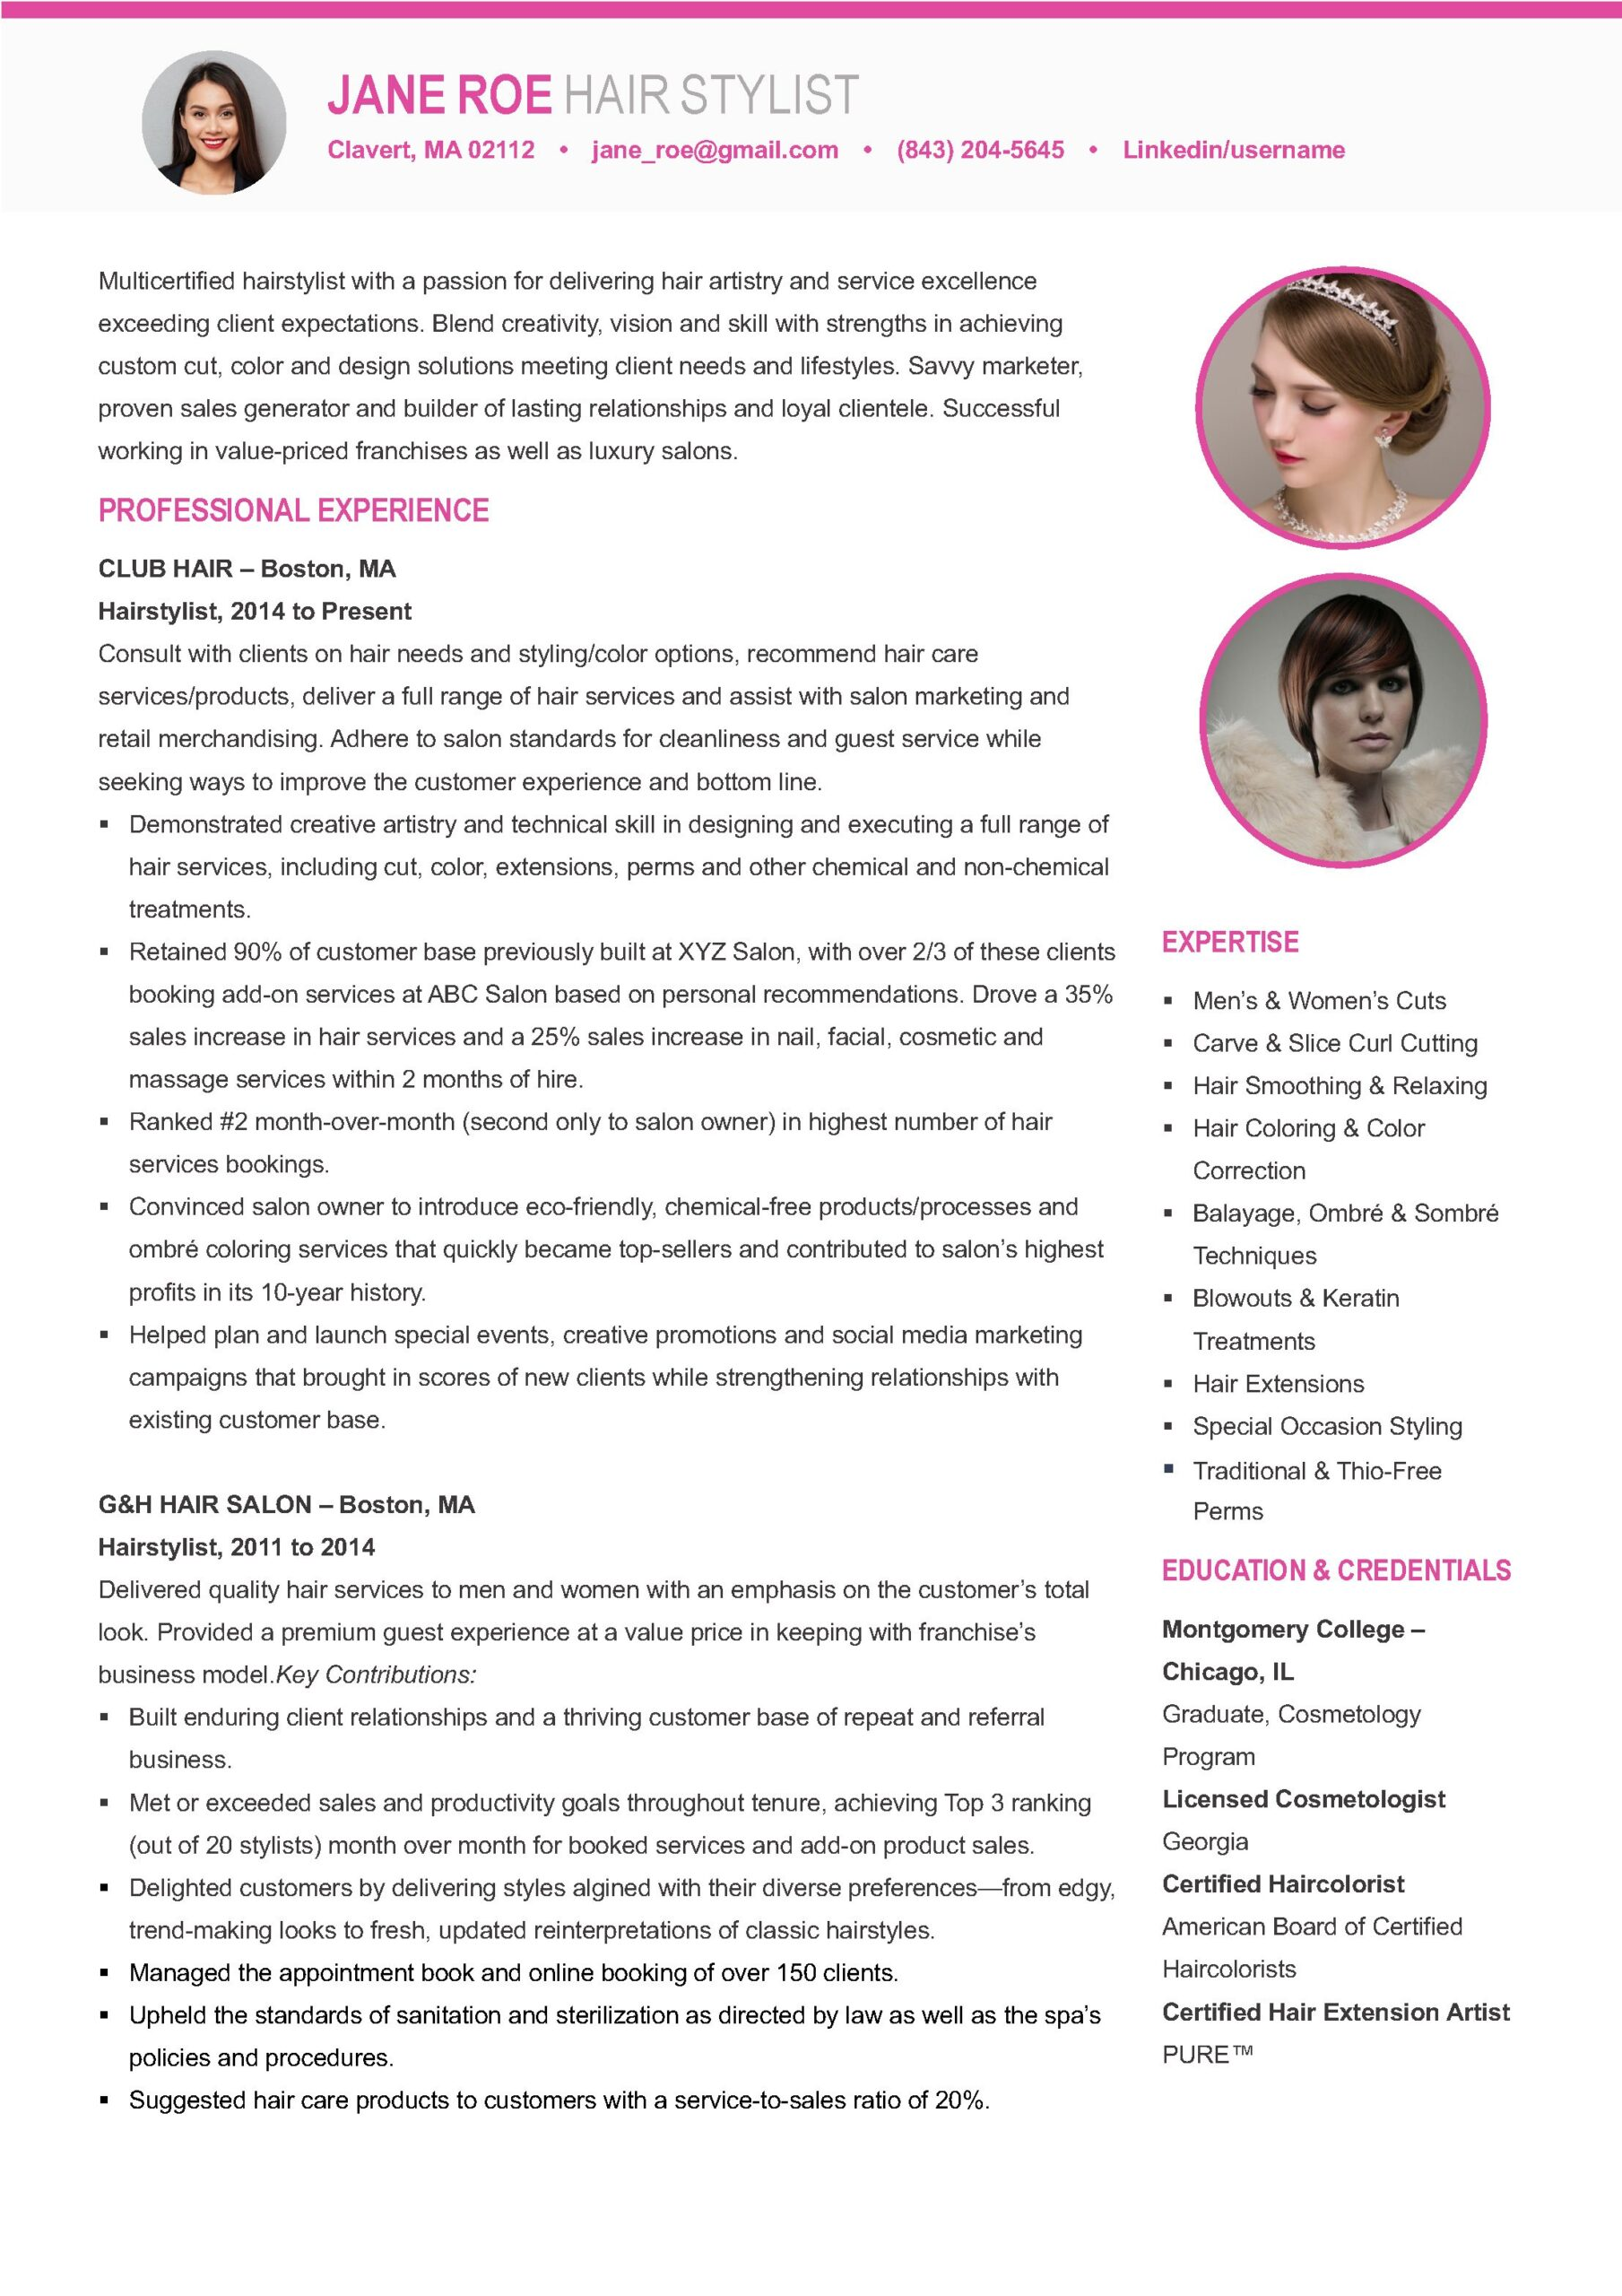 hair stylist resume template brand new free templates medical externship for older Resume Free Hair Stylist Resume Templates Download